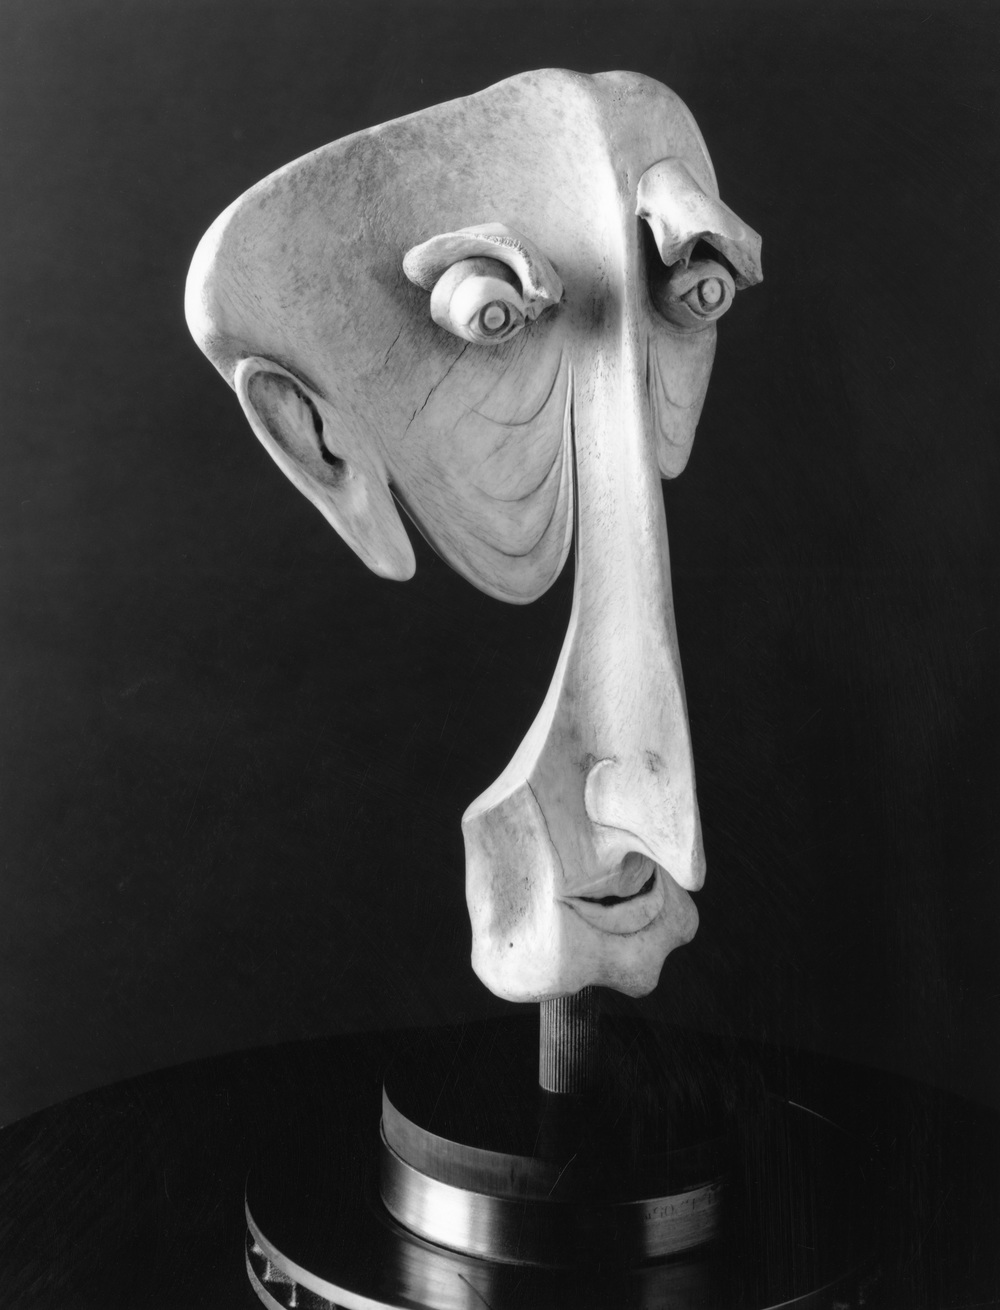 Baldy - Bone Scupture by Jerry Hardin